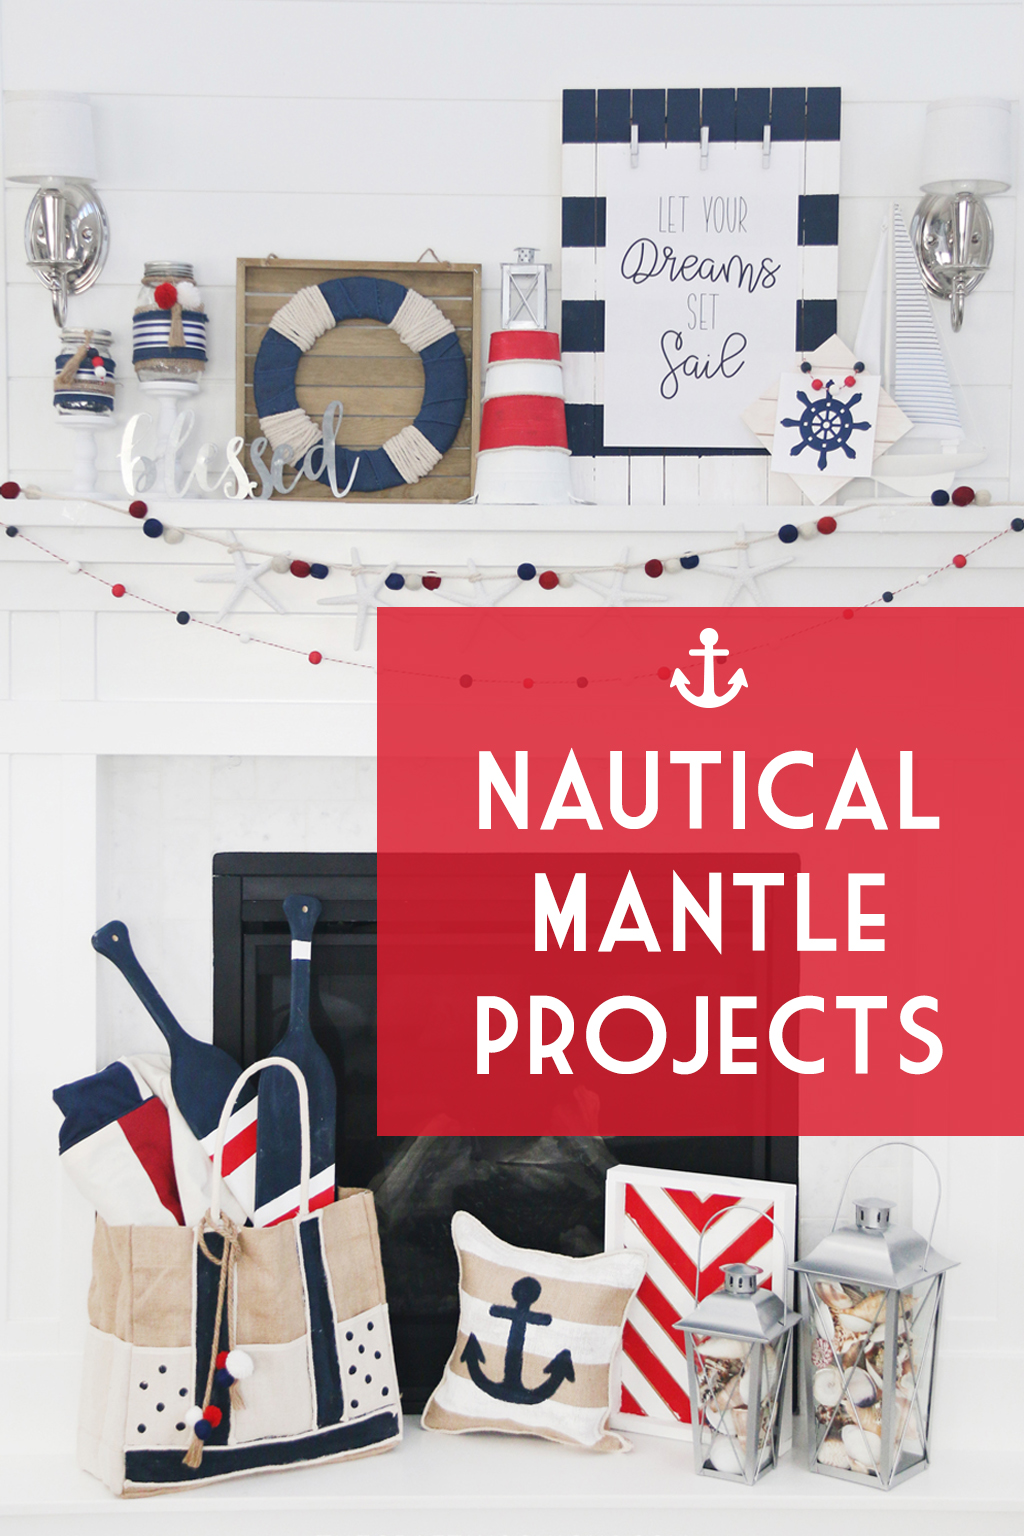 Nautical Mantle Projects